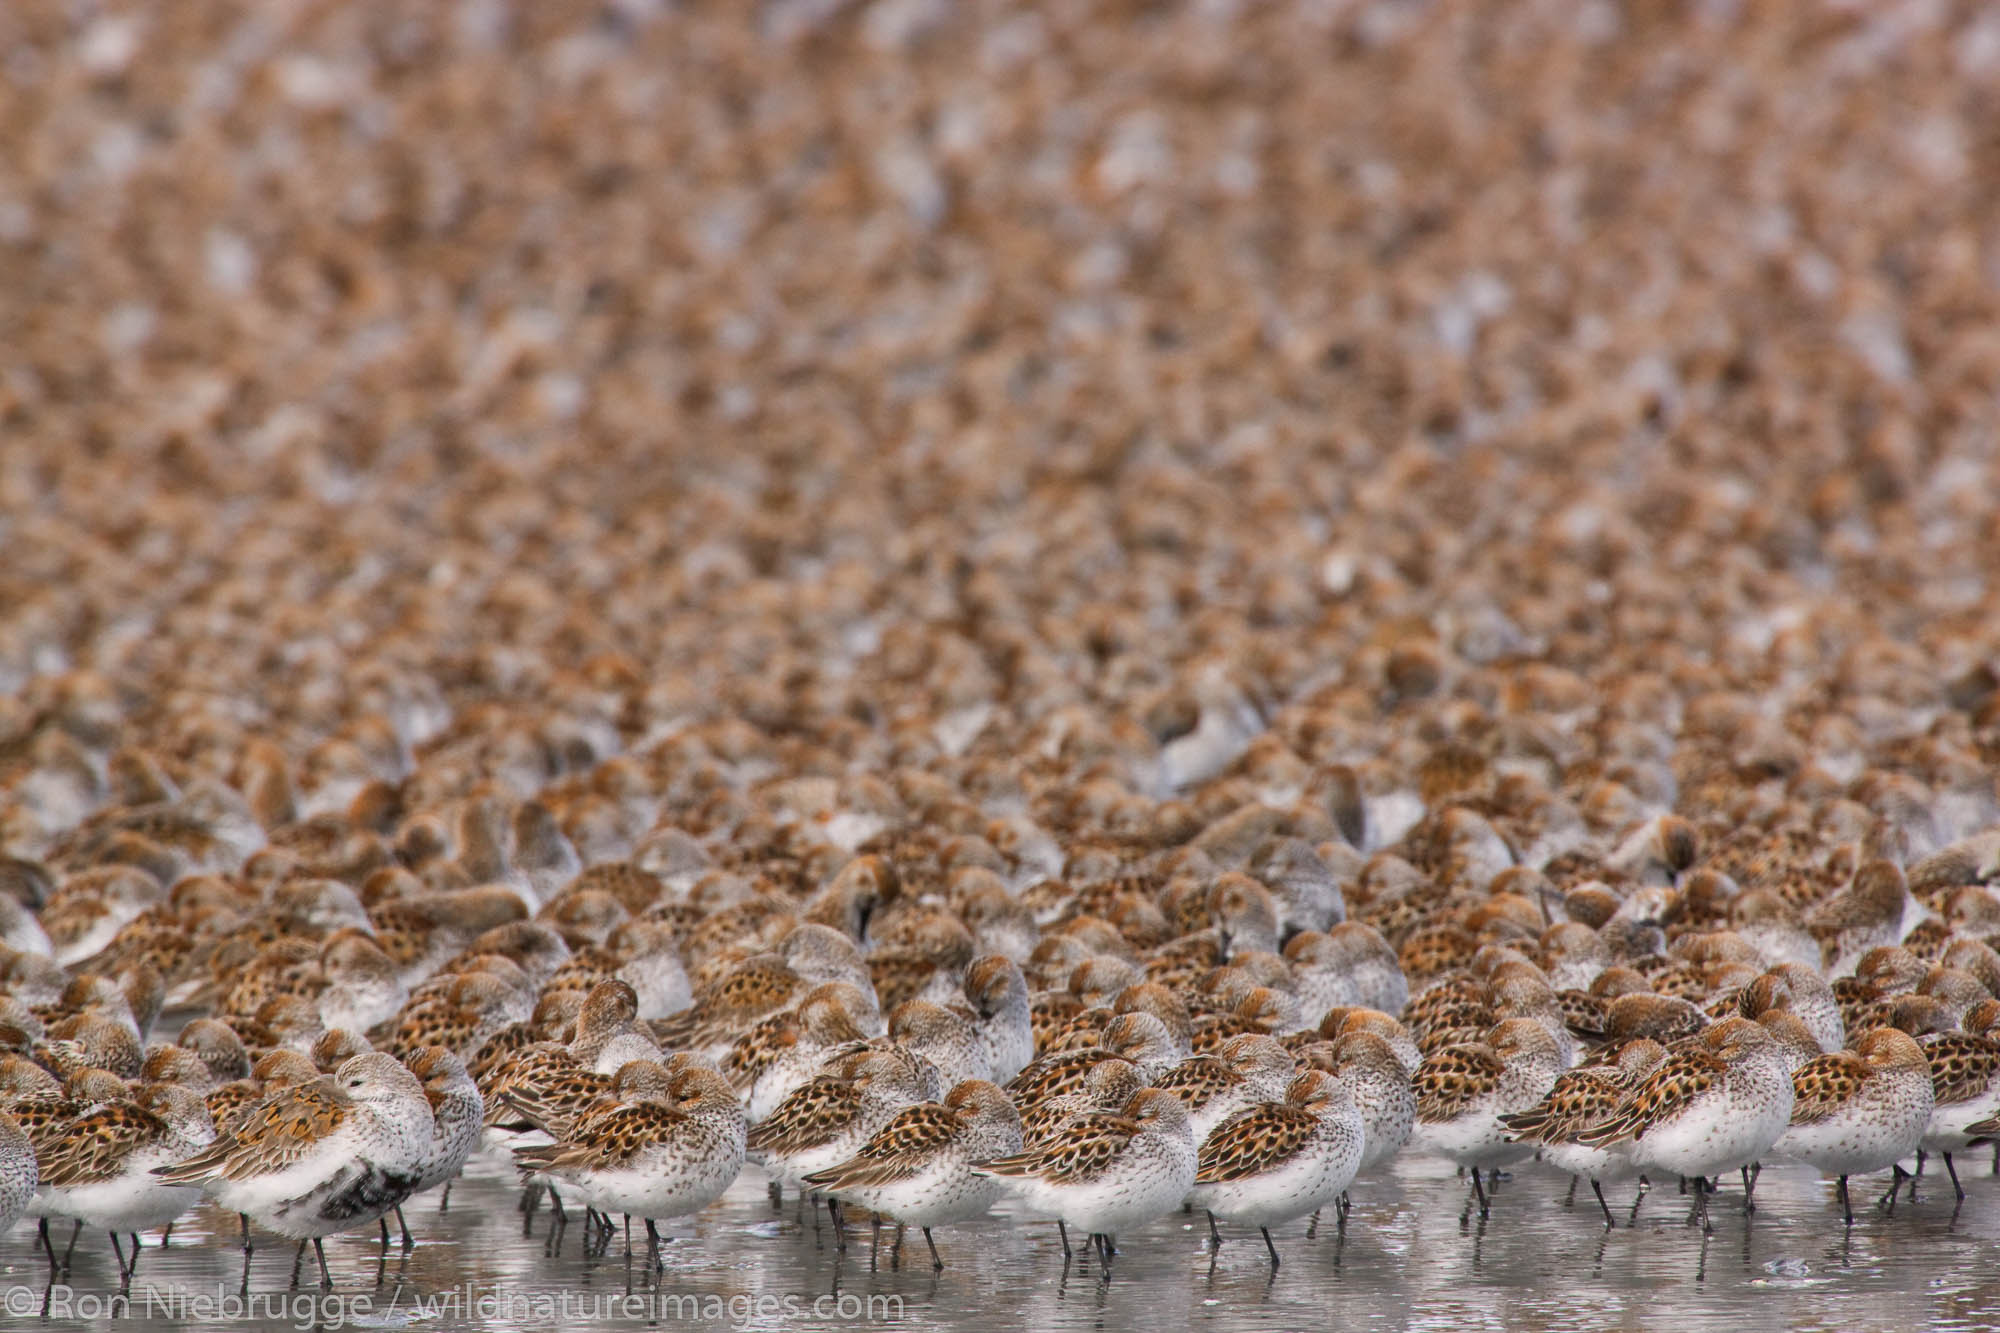 Shorebird migration on the Copper River Delta, Chugach National Forest, Cordova, Alaska.